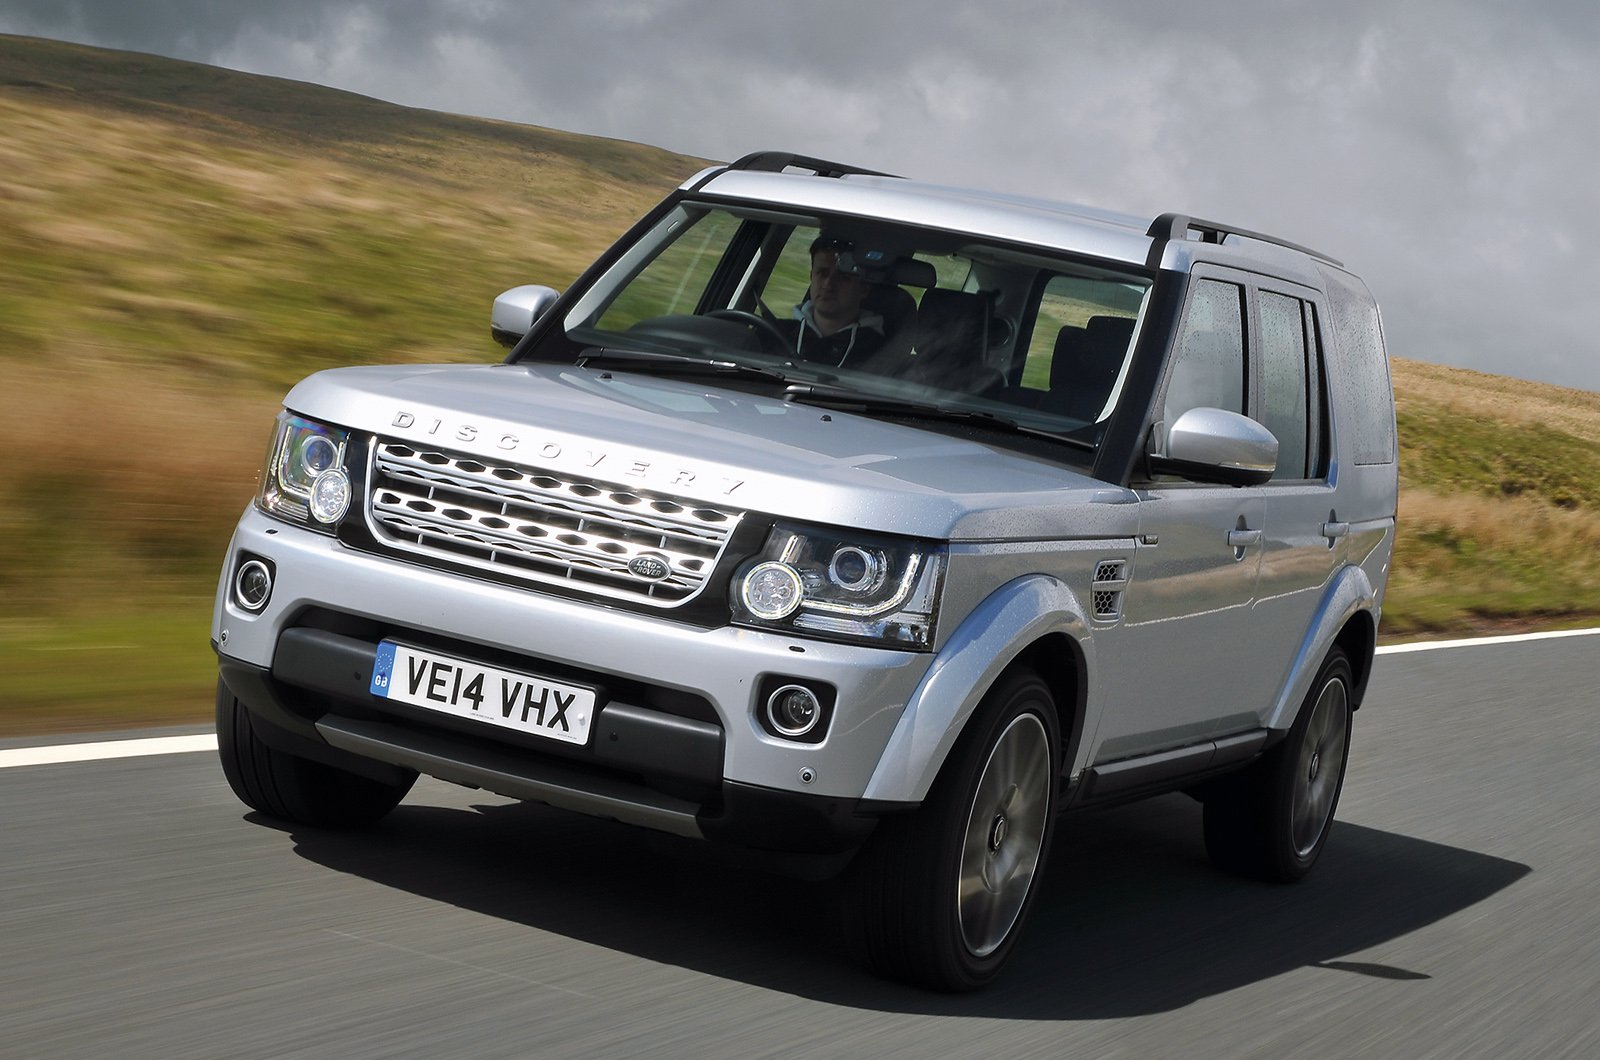 Used Land Rover Discovery front corner